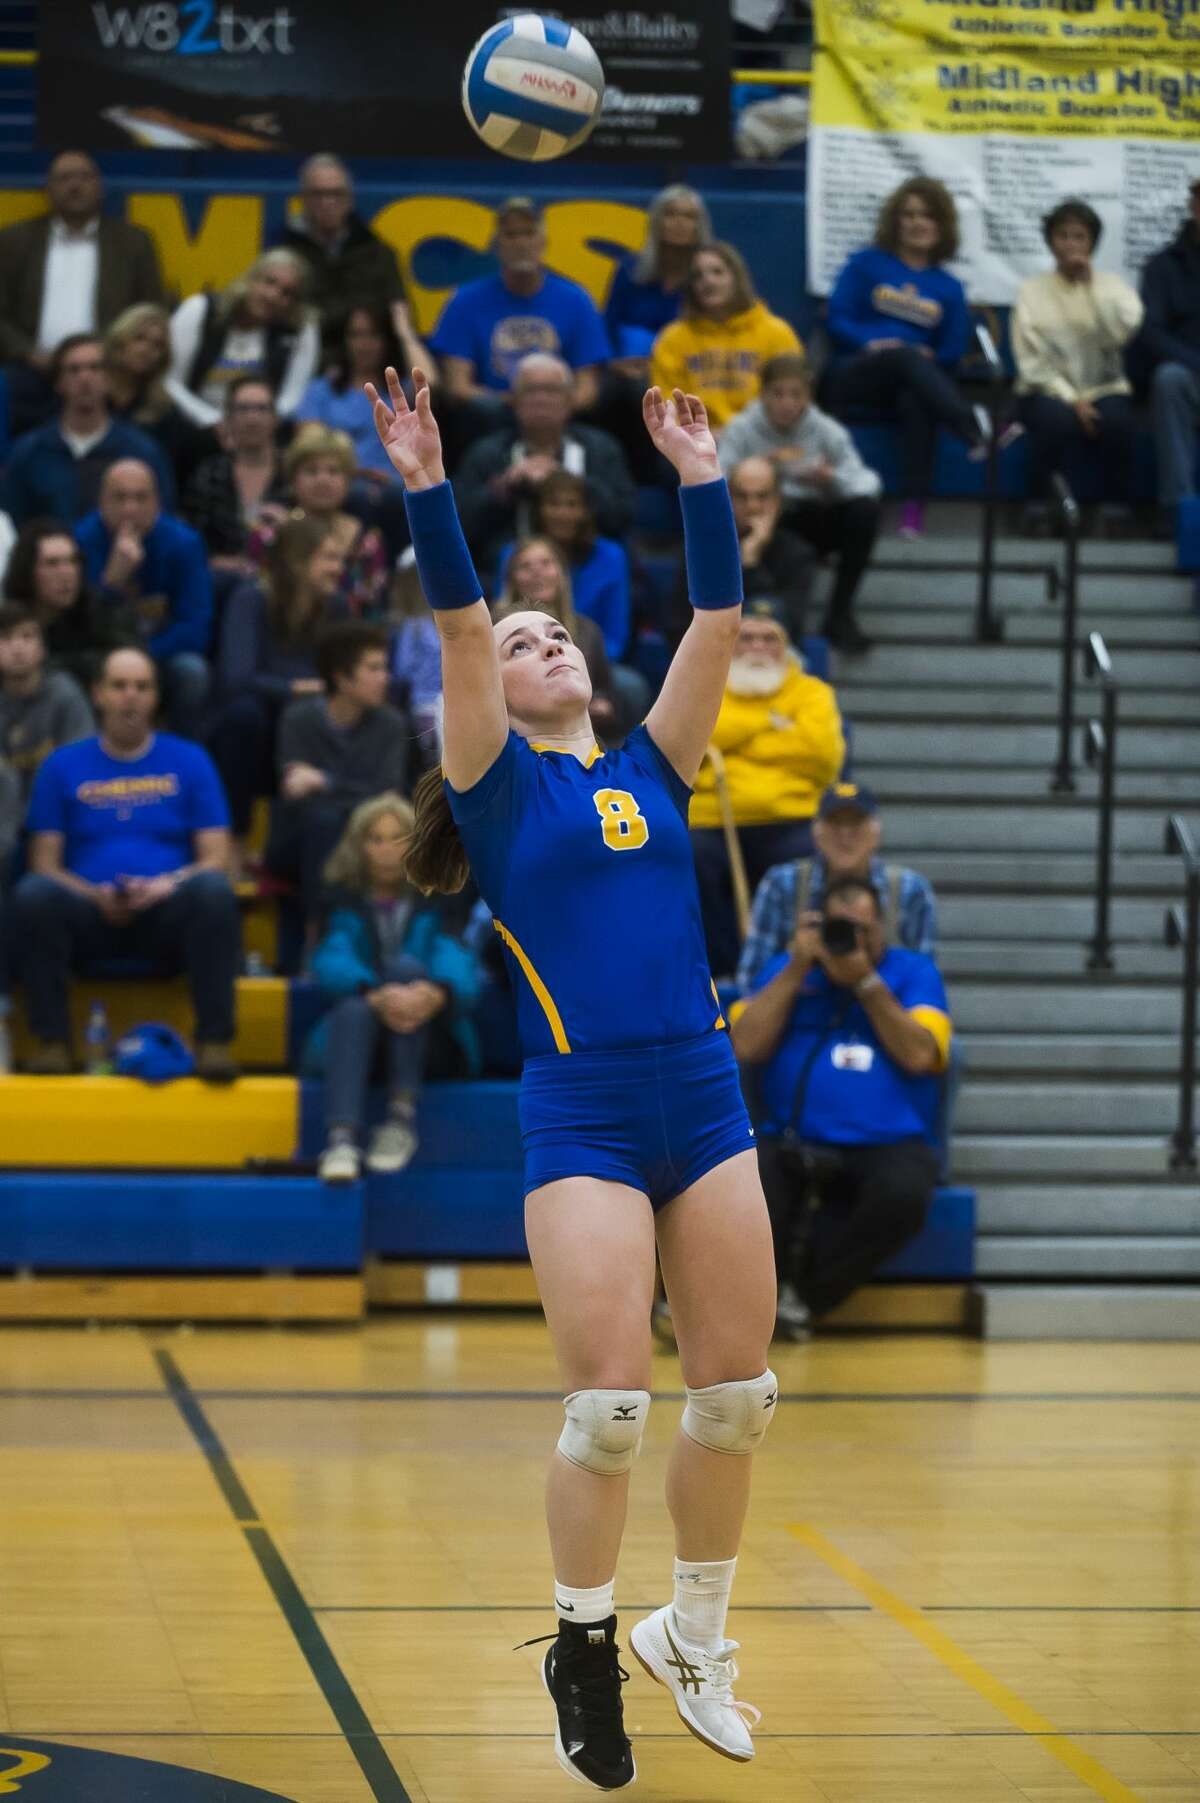 Midland's Olivia DePierro sets the ball during a match against Dow Tuesday, Oct. 22, 2019 at Midland High School. (Katy Kildee/kkildee@mdn.net)